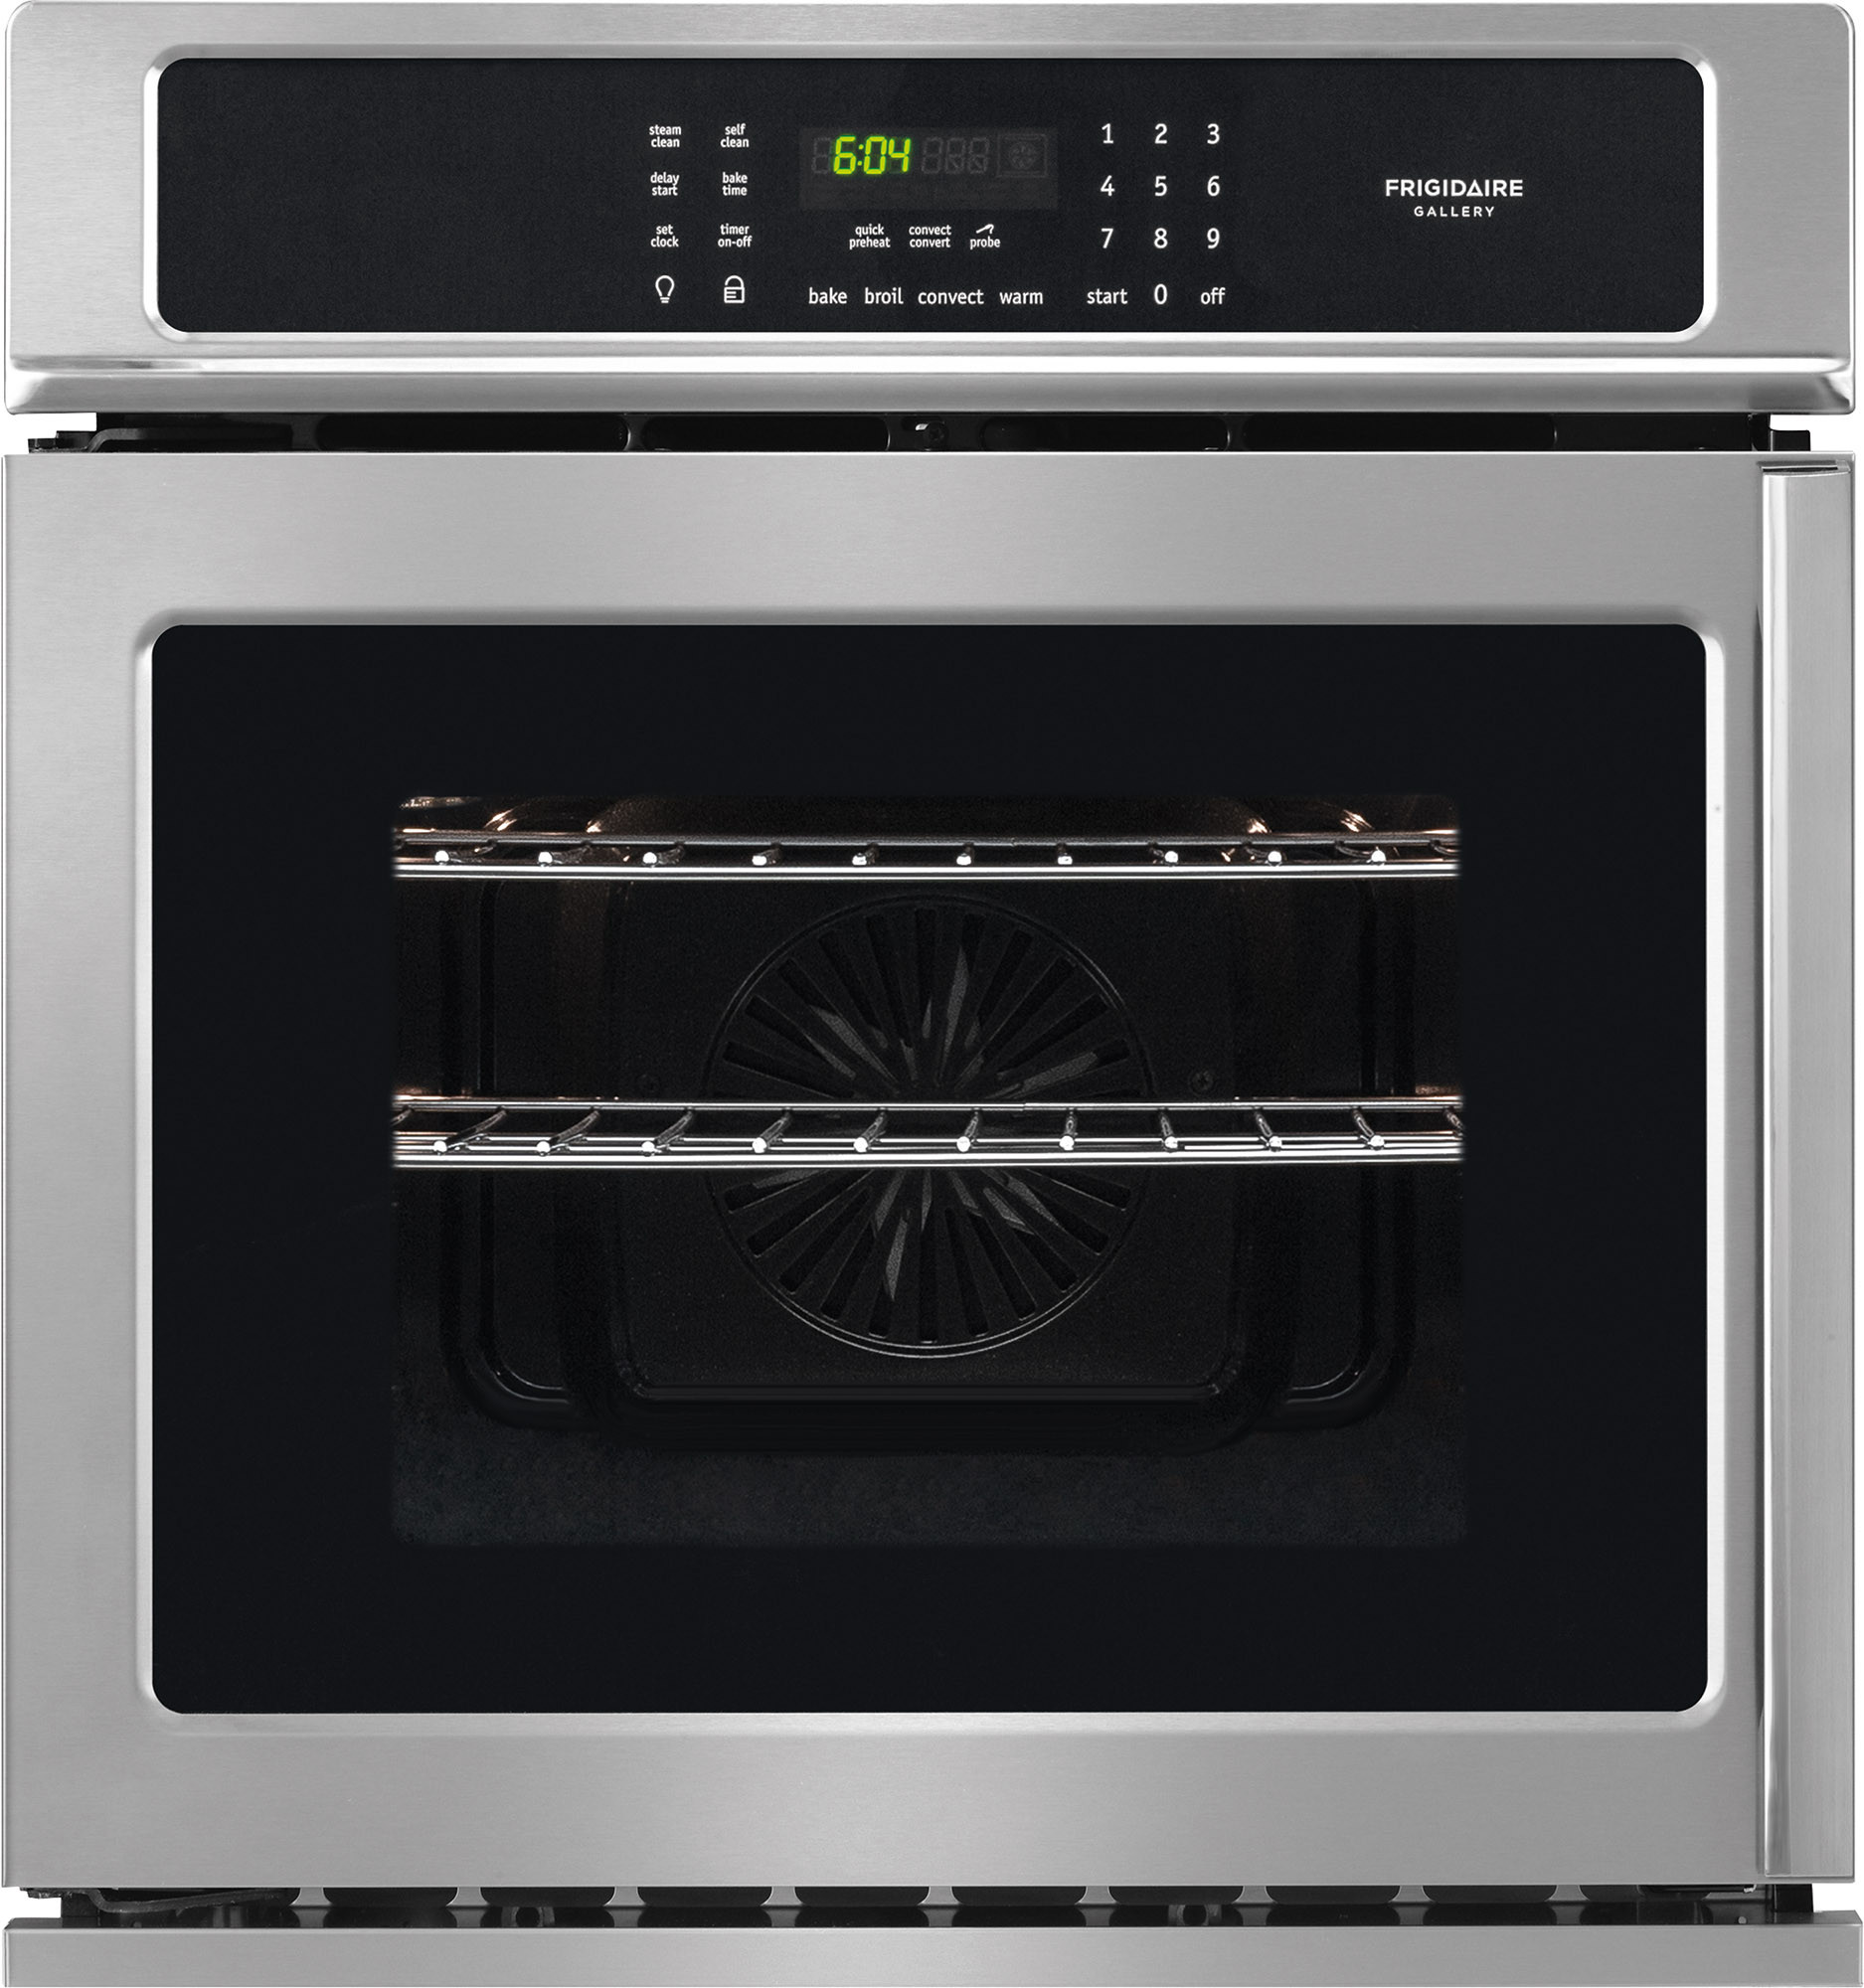 frigidaire fgew276spf 27 inch single electric wall oven with 3 8 cufrigidaire gallery series fgew276spf 27 inch single electric wall oven